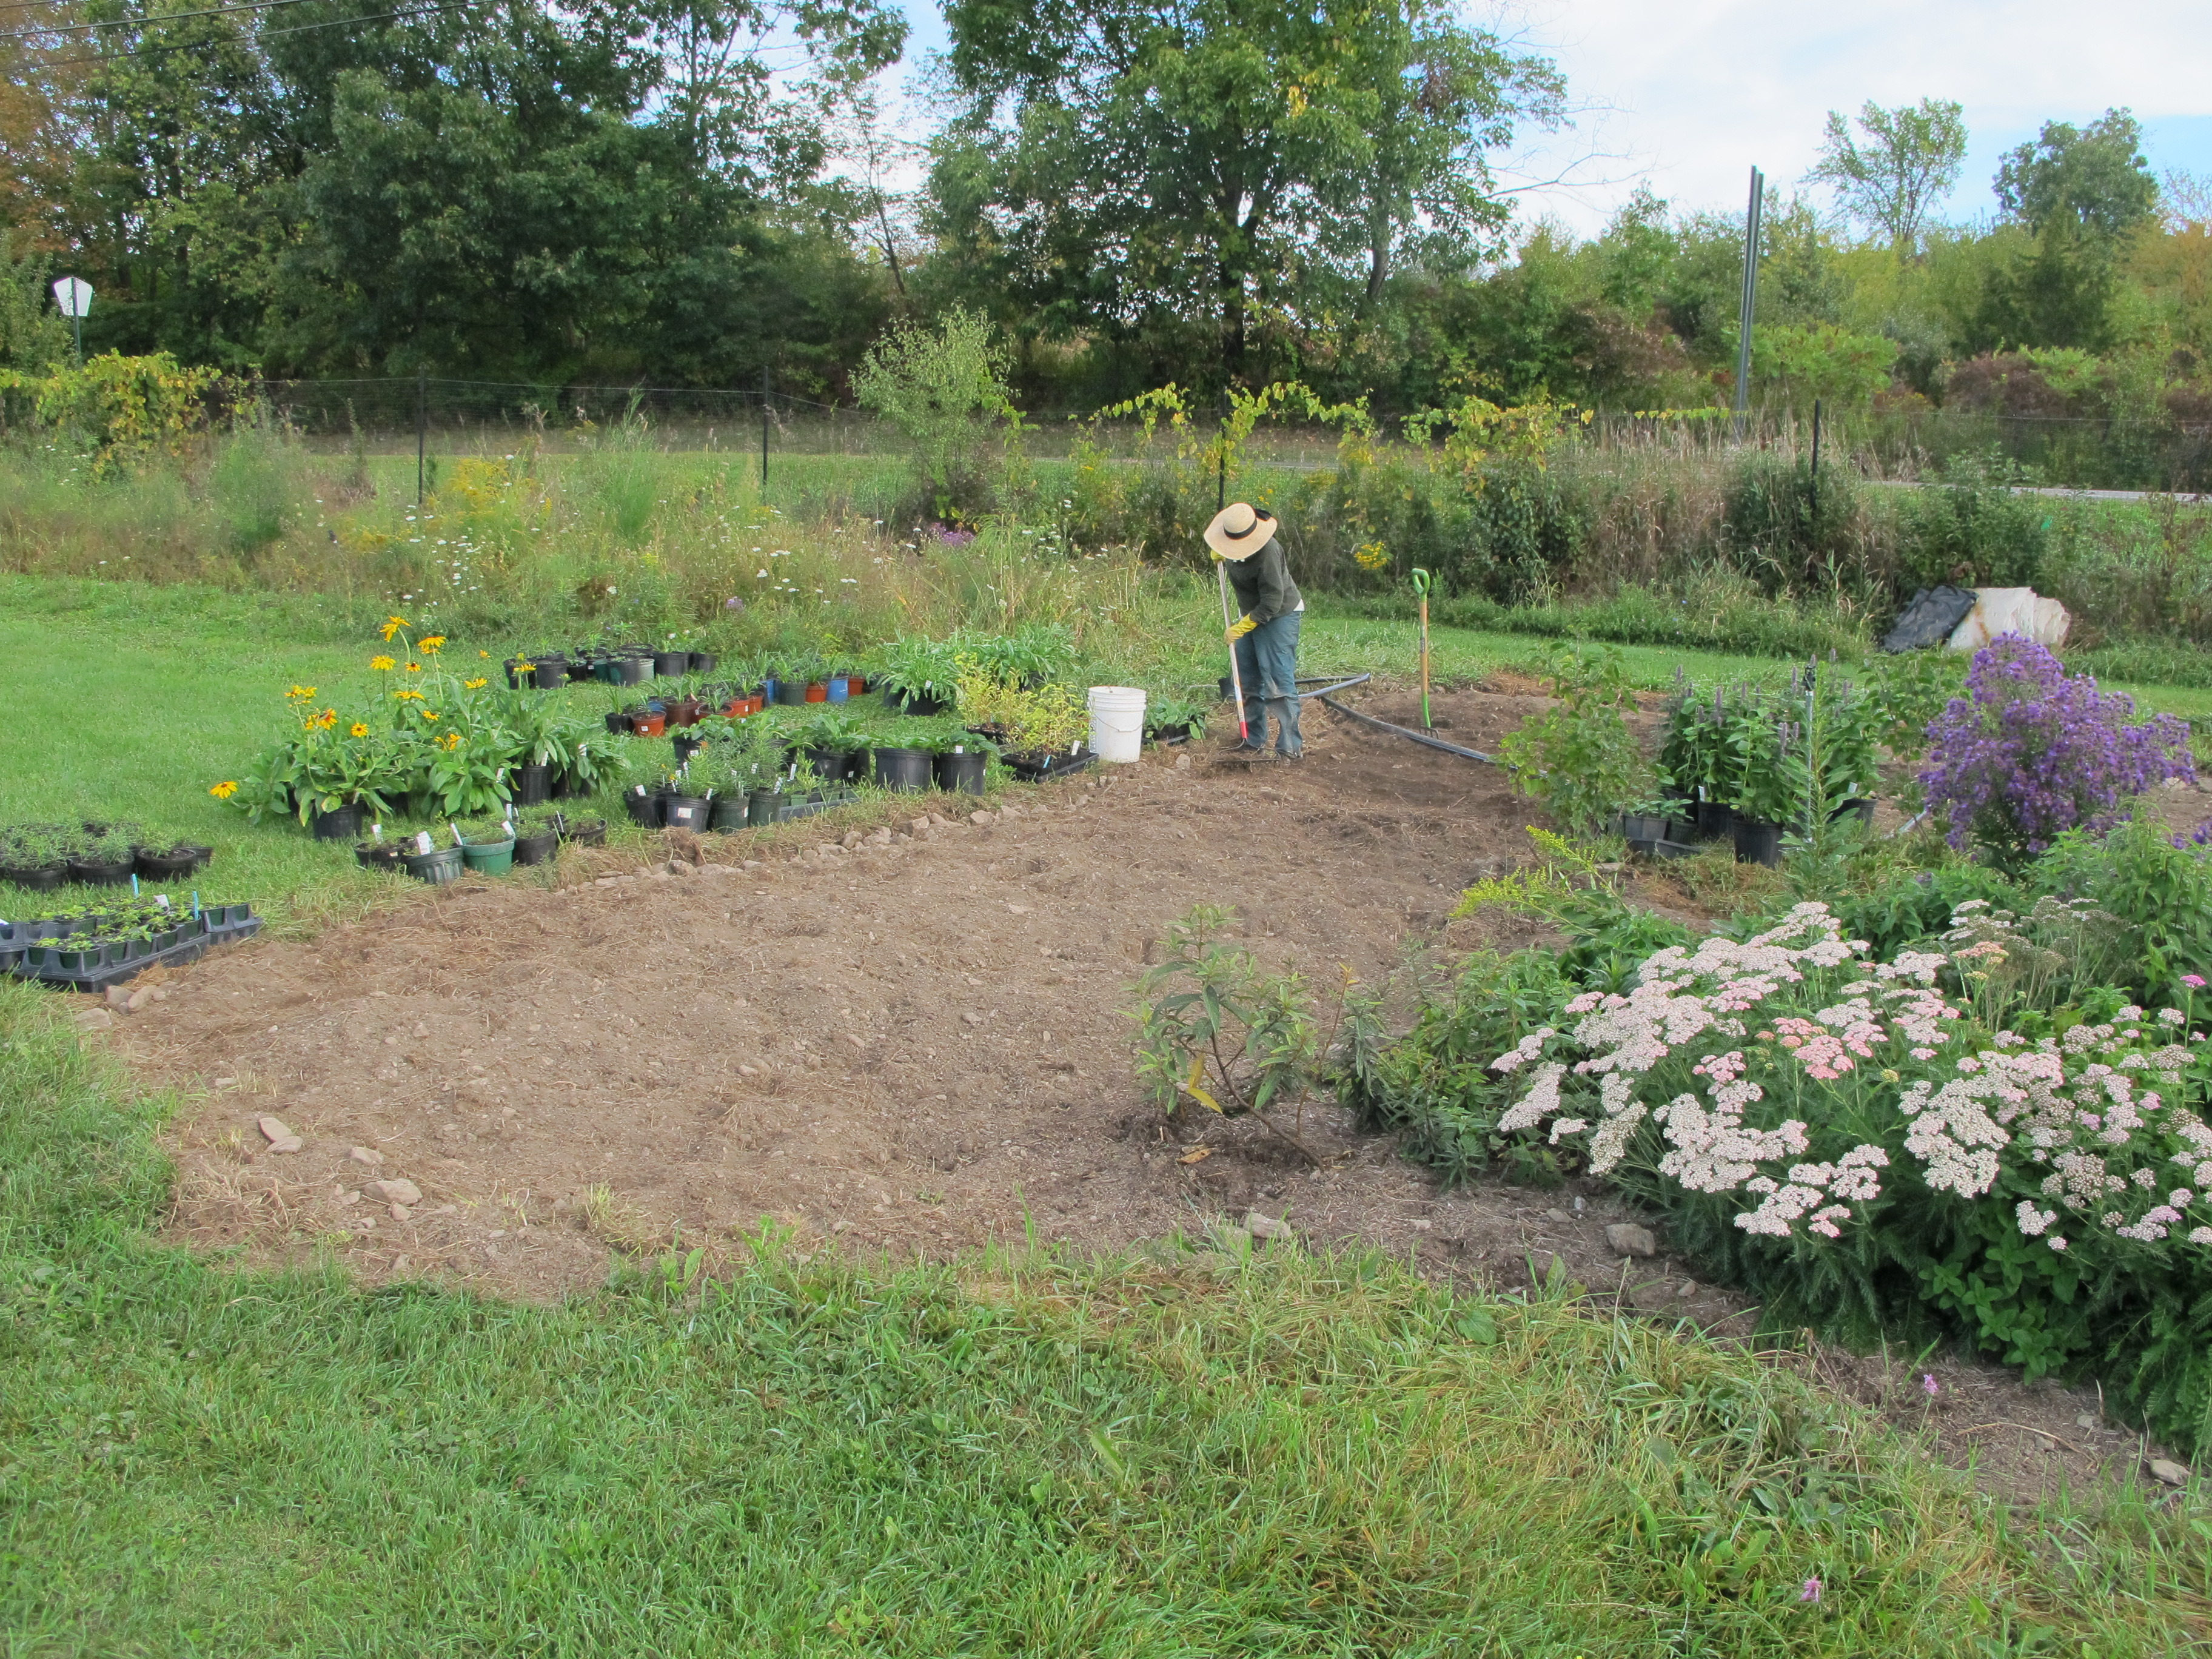 a person rakes soil to prepare more ground for planting